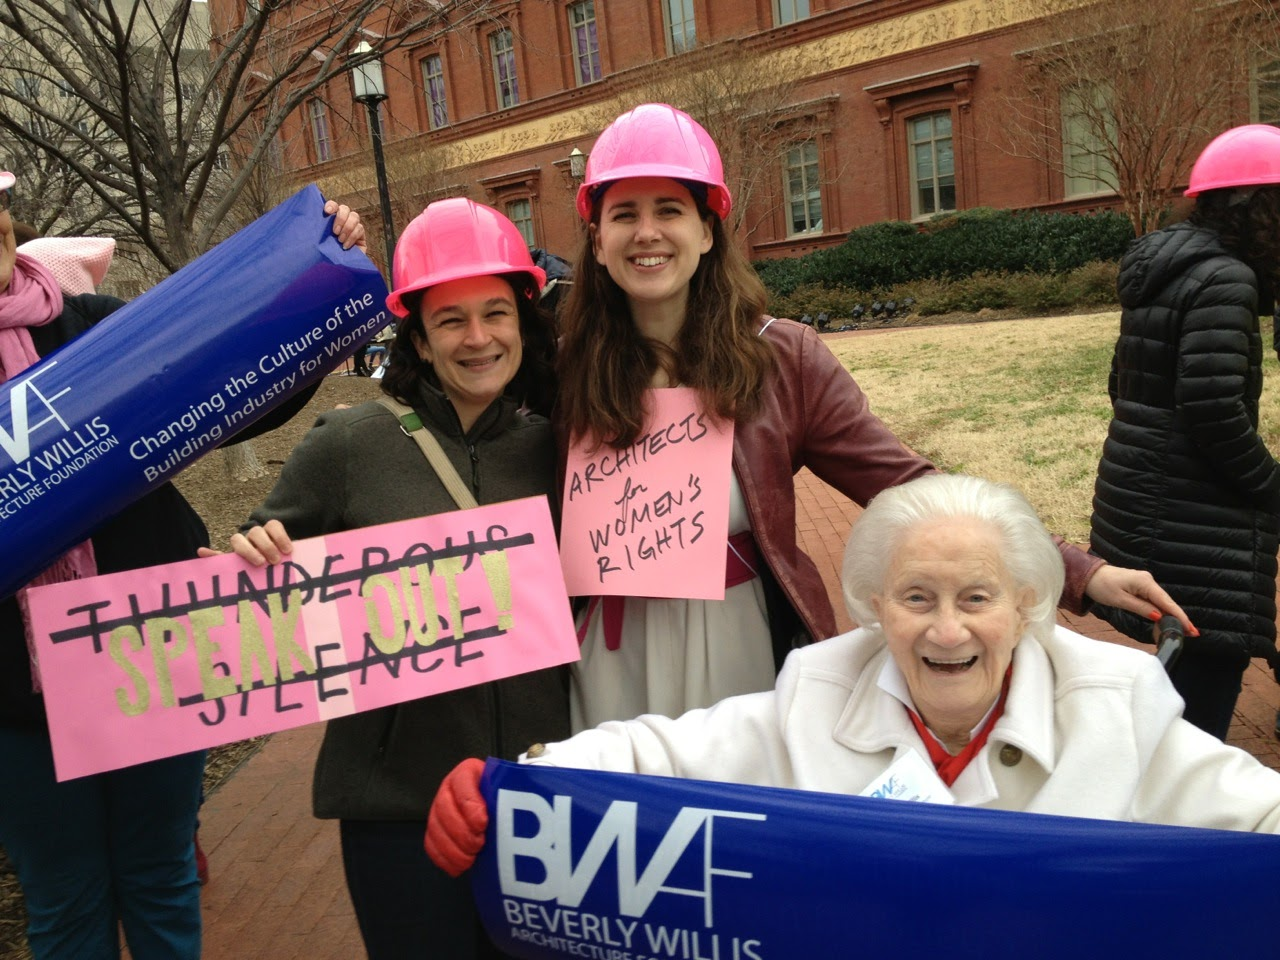 Allie O'Neil, Karen Kubey, Beverly Willis @NBM for Women's March_21Jan2017